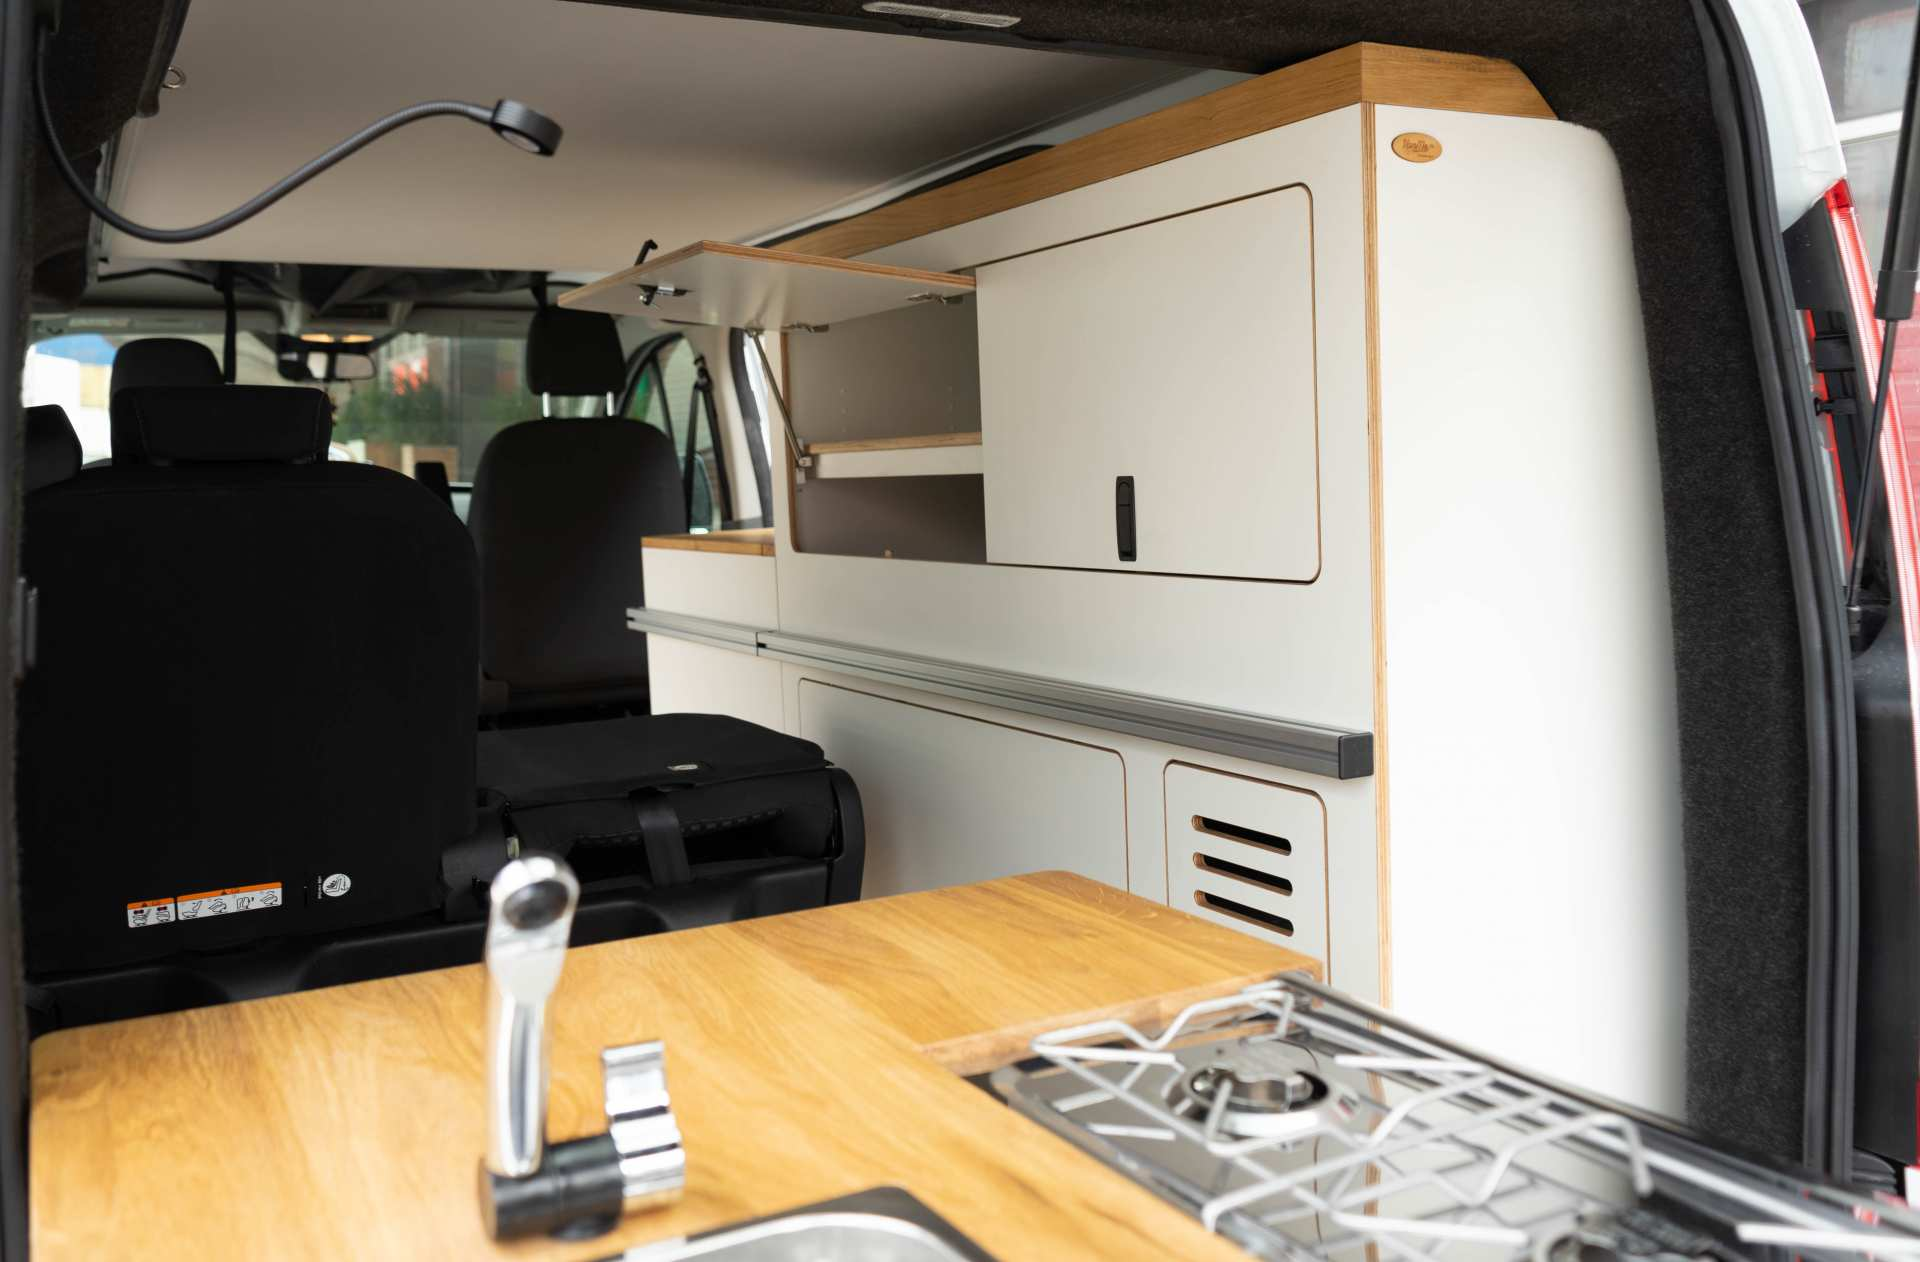 Individualausbau: EXPEDITION Ford Transit Custom, langer Radstand - 25